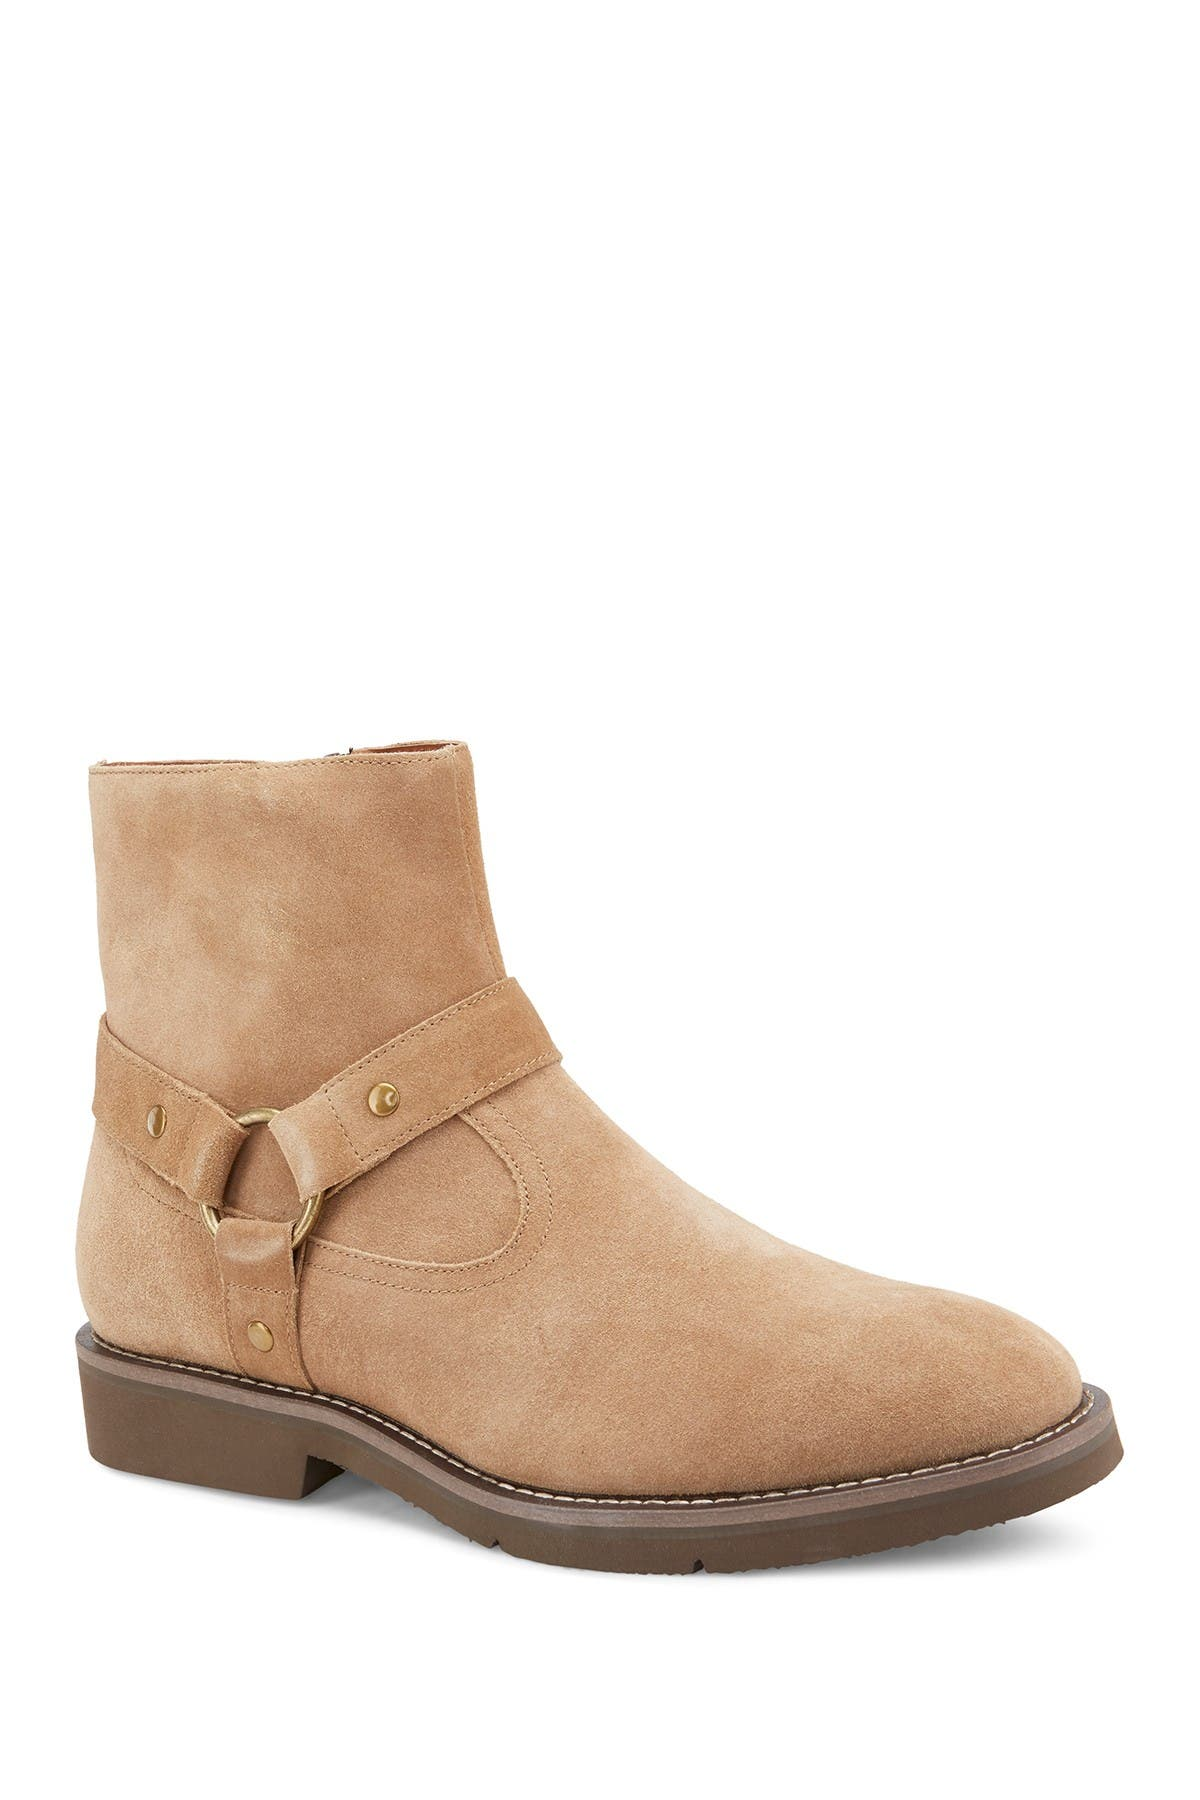 Image of Vintage Foundry Isaac Chelsea Boot